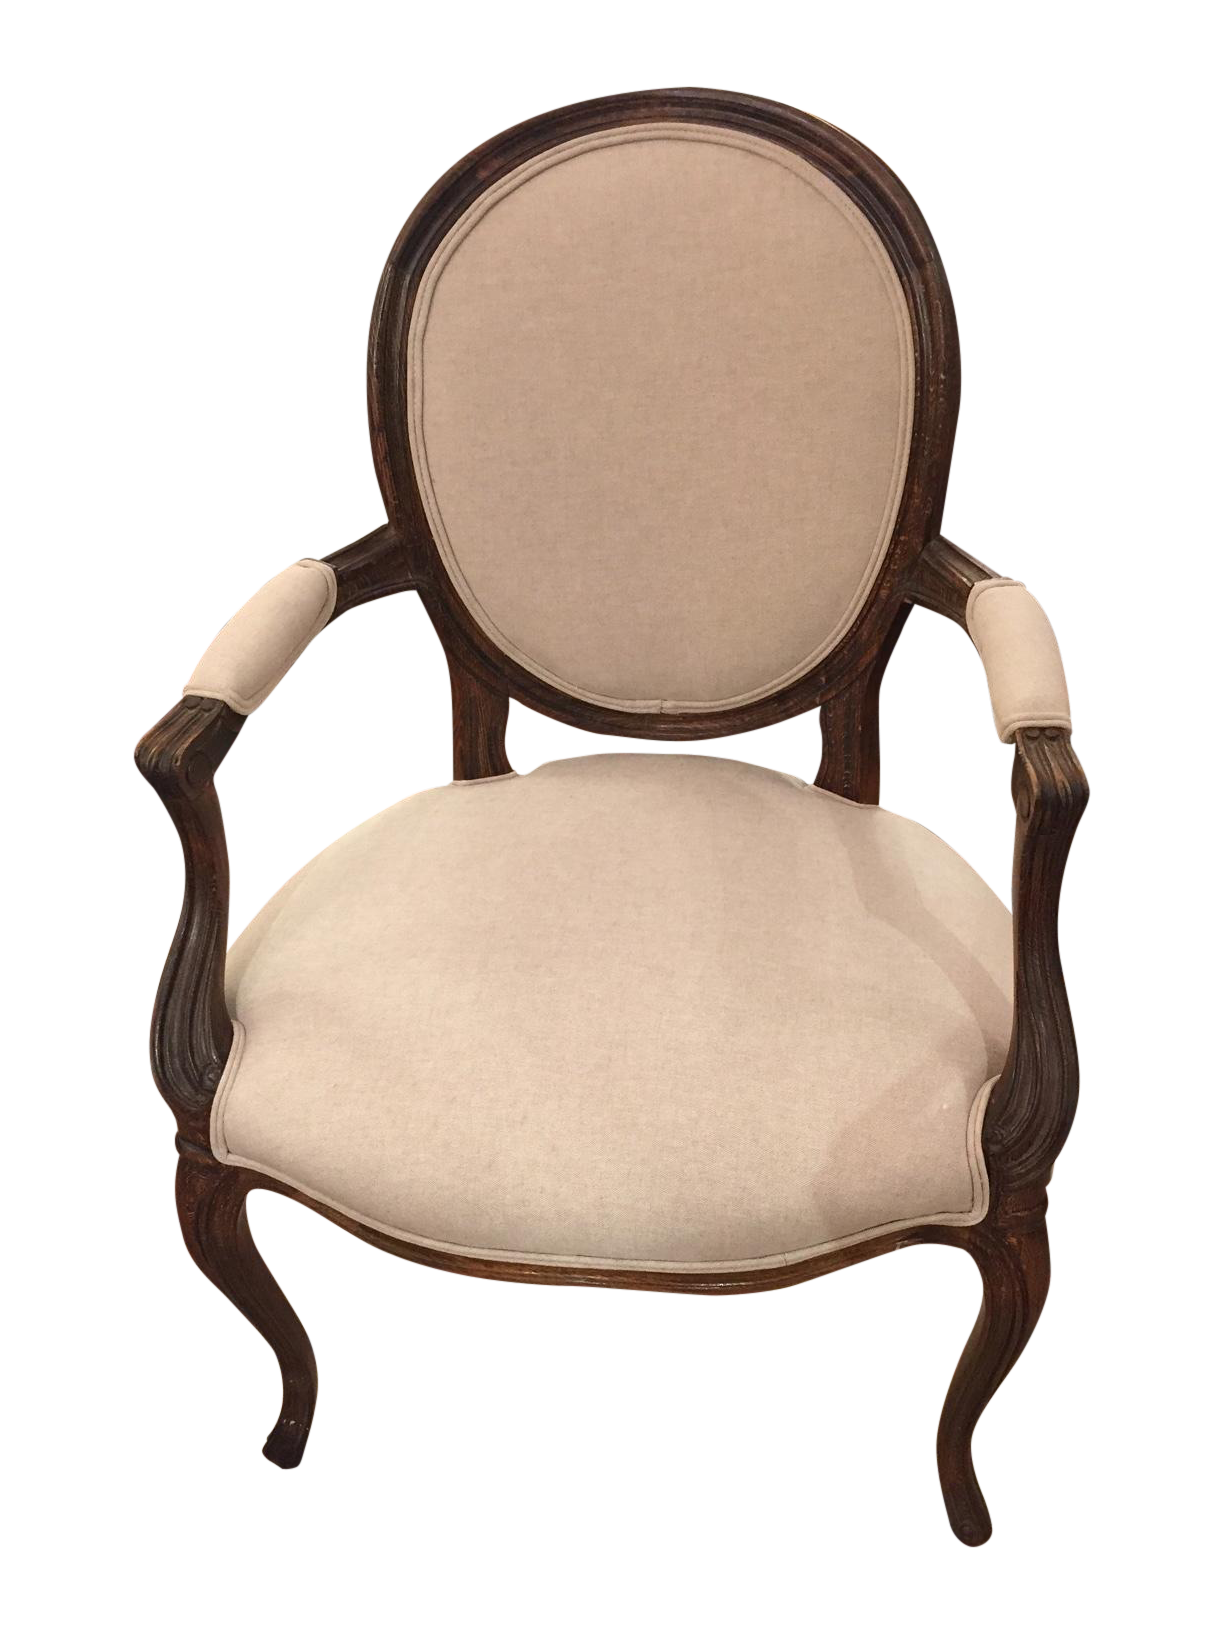 1920s French Dining Chairs With Arms A Pair Chairish : 1920s french dining chairs with arms a pair 6981 from www.chairish.com size 1224 x 1632 png 1172kB